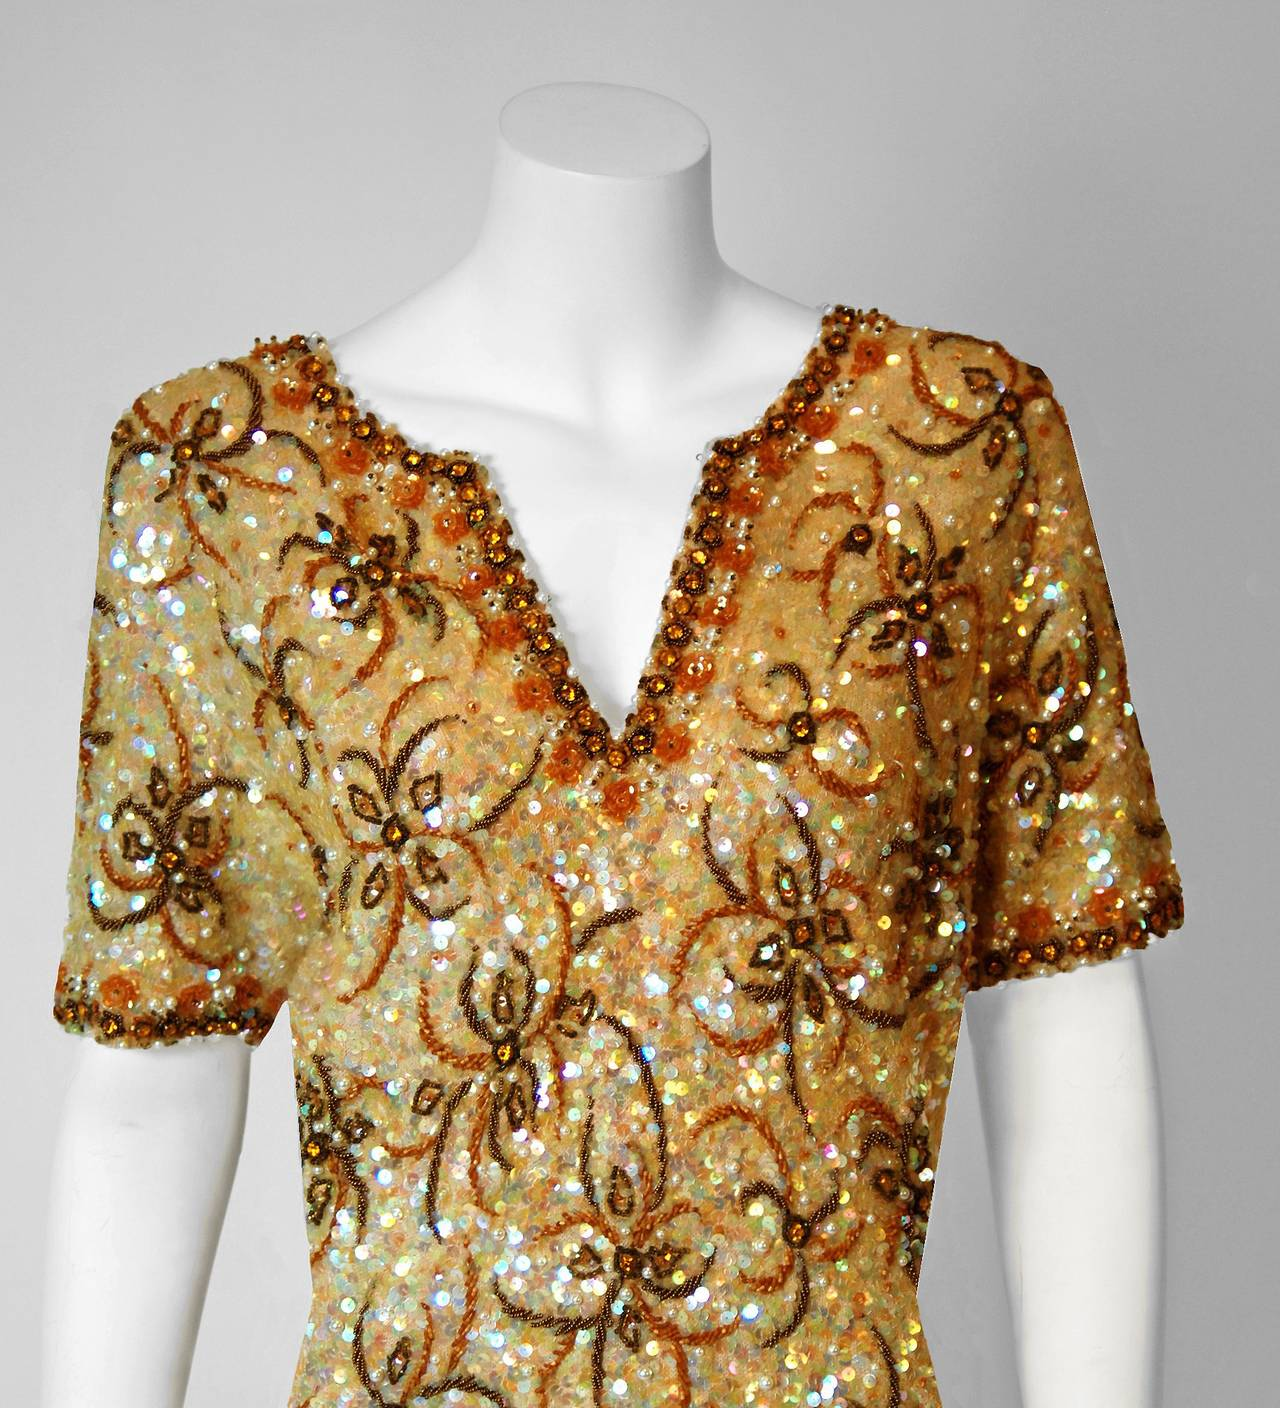 1950's Gene Shelly Golden-Yellow Sequin Beaded Knit Abstract Cocktail Dress 2